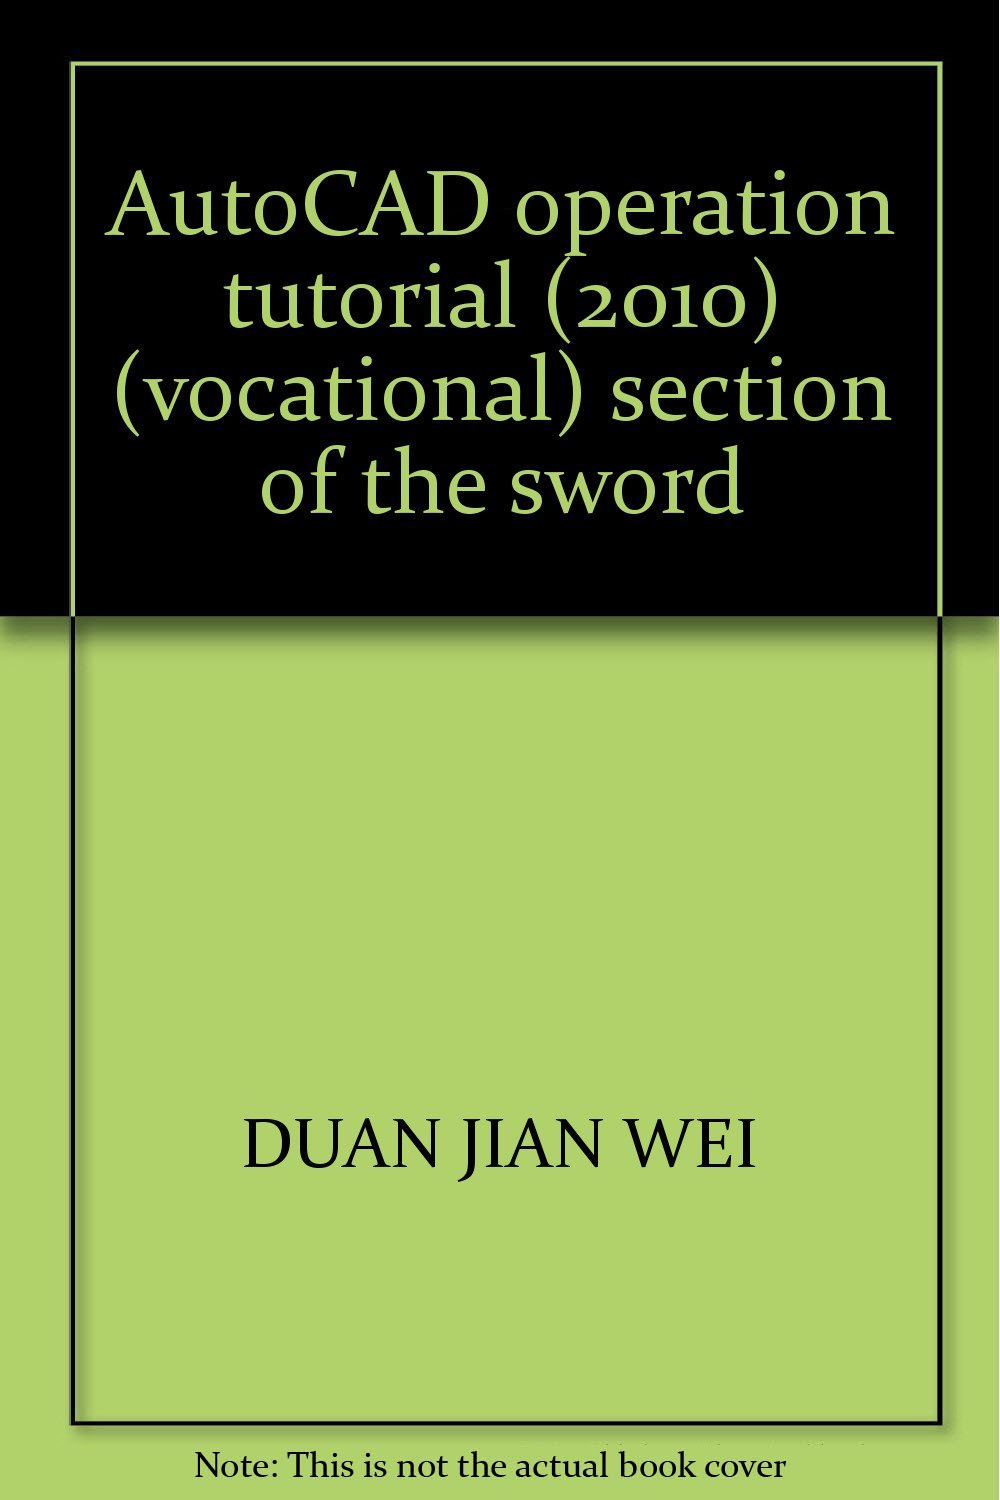 Download AutoCAD operation tutorial (2010) (vocational) section of the sword PDF